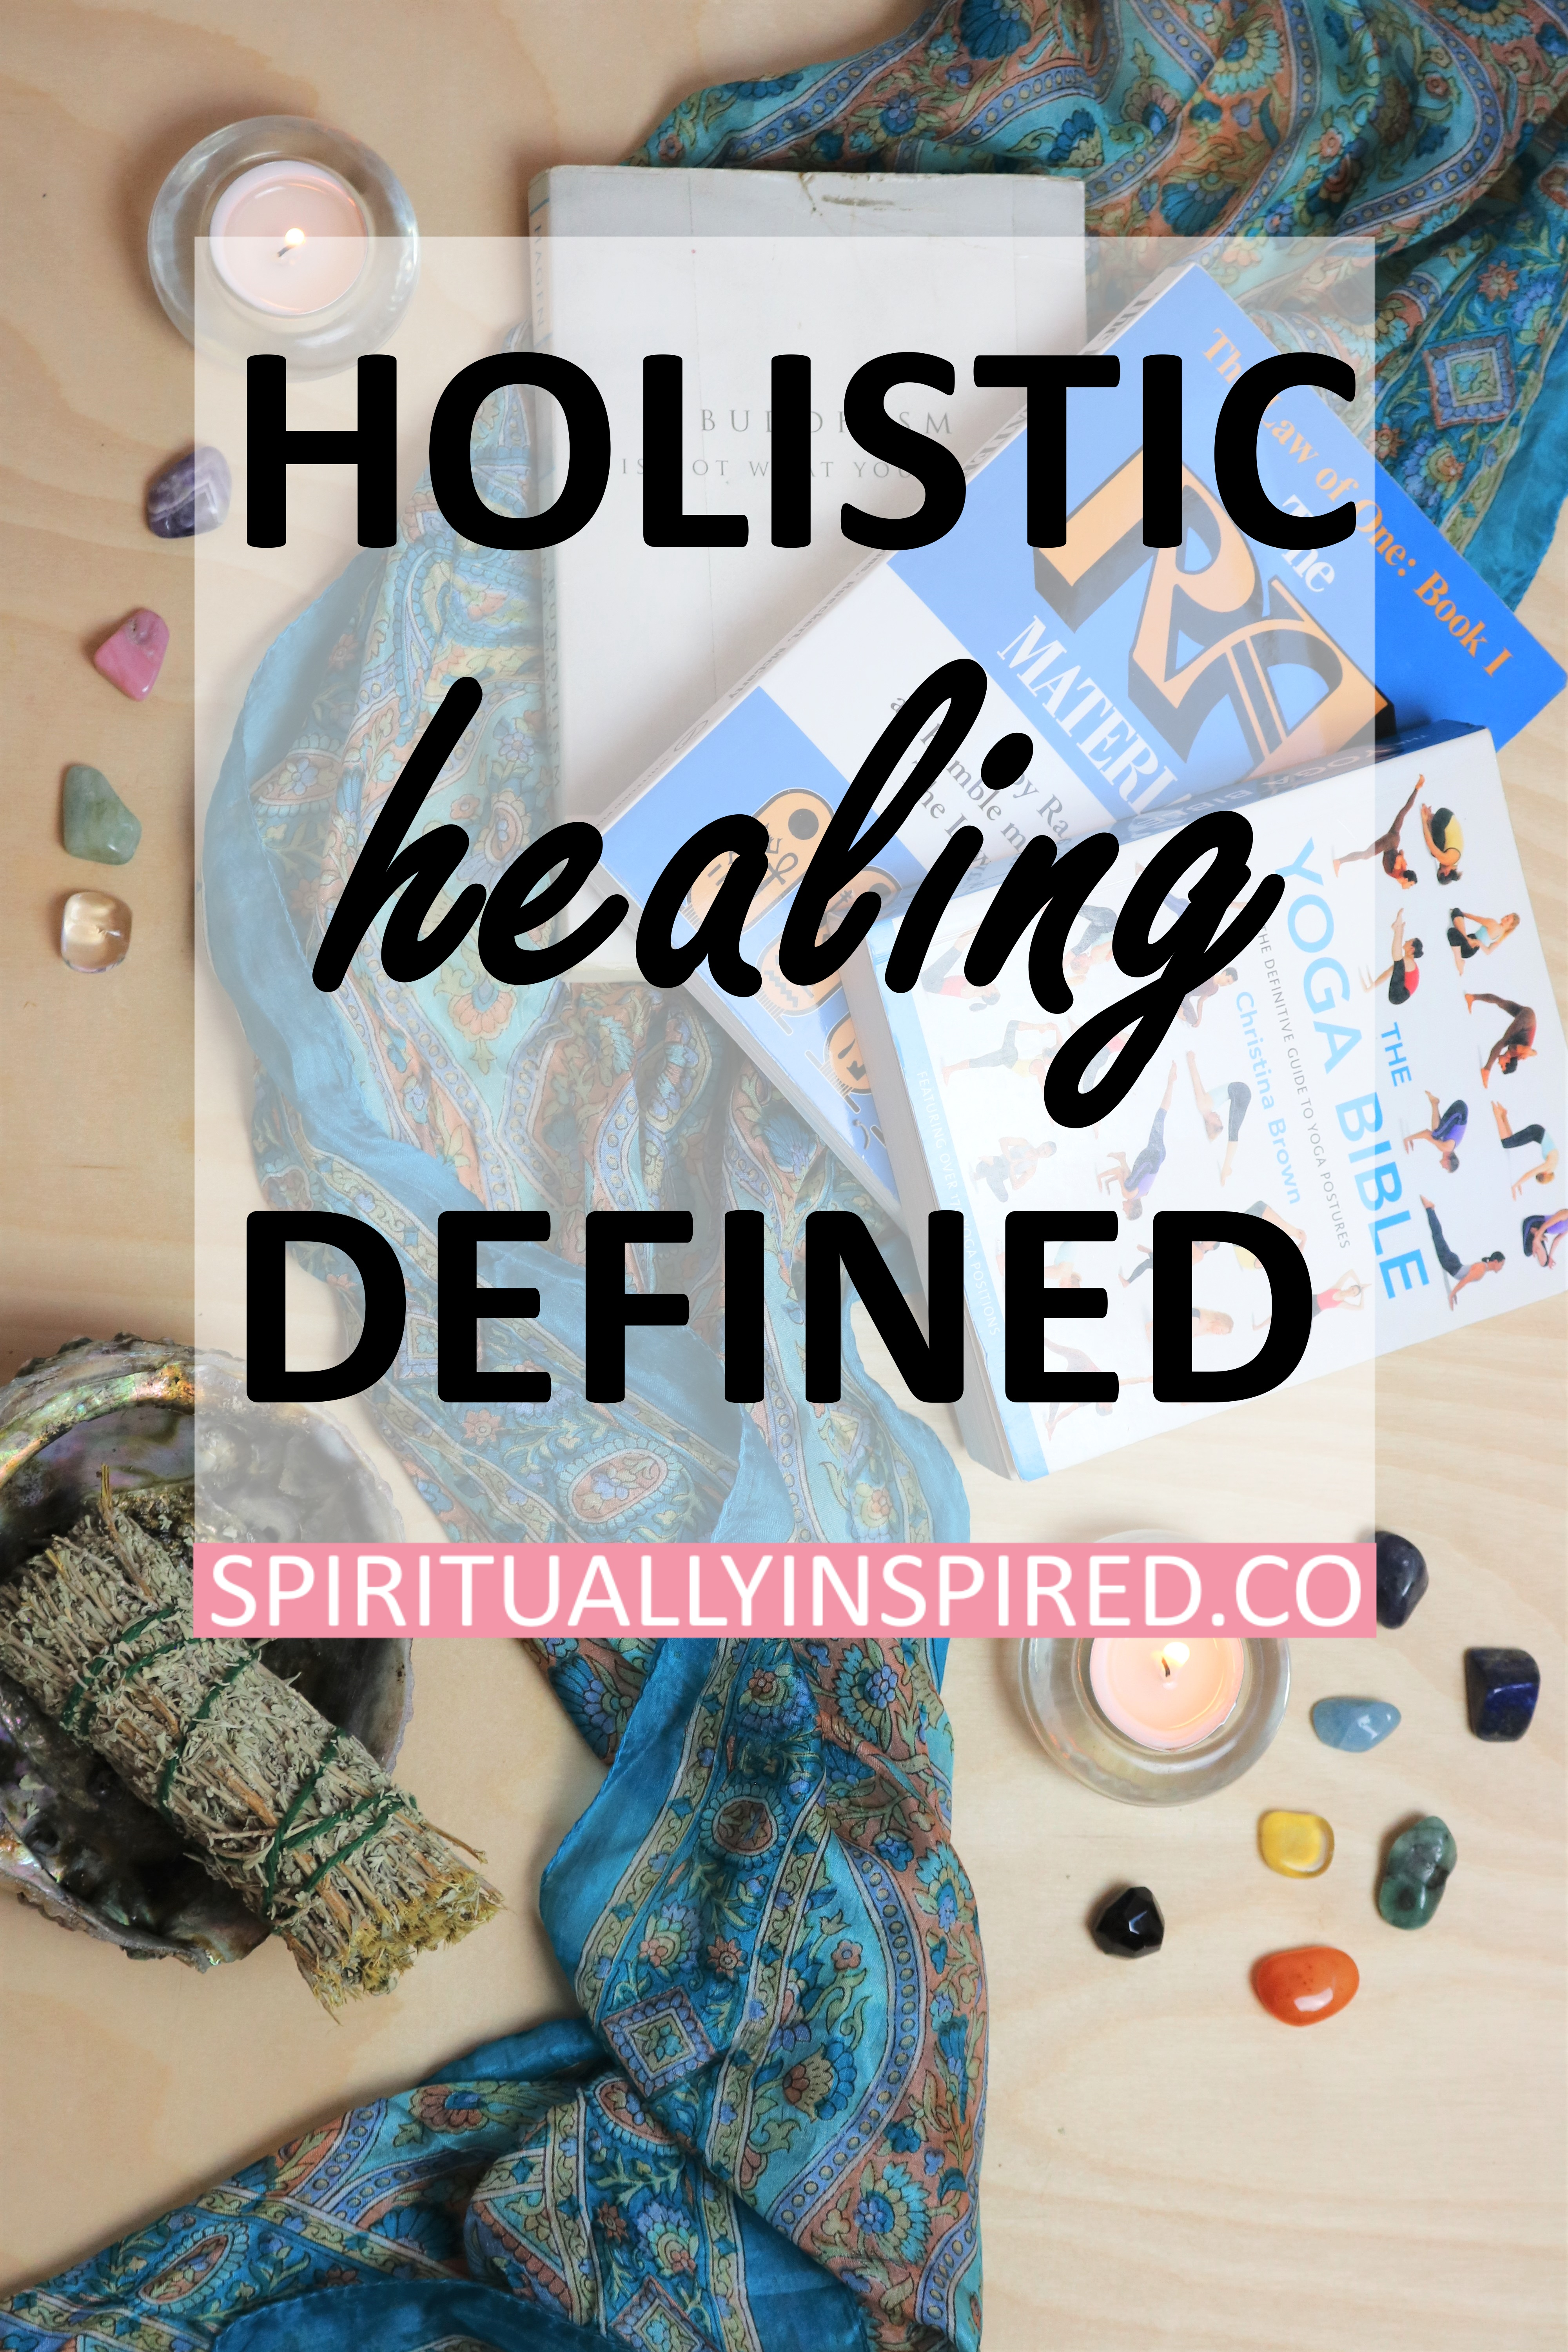 Holistic healing is the practice of treating the whole person: mind, body, and spirit. More modern medicine practices really only treat the symptoms.